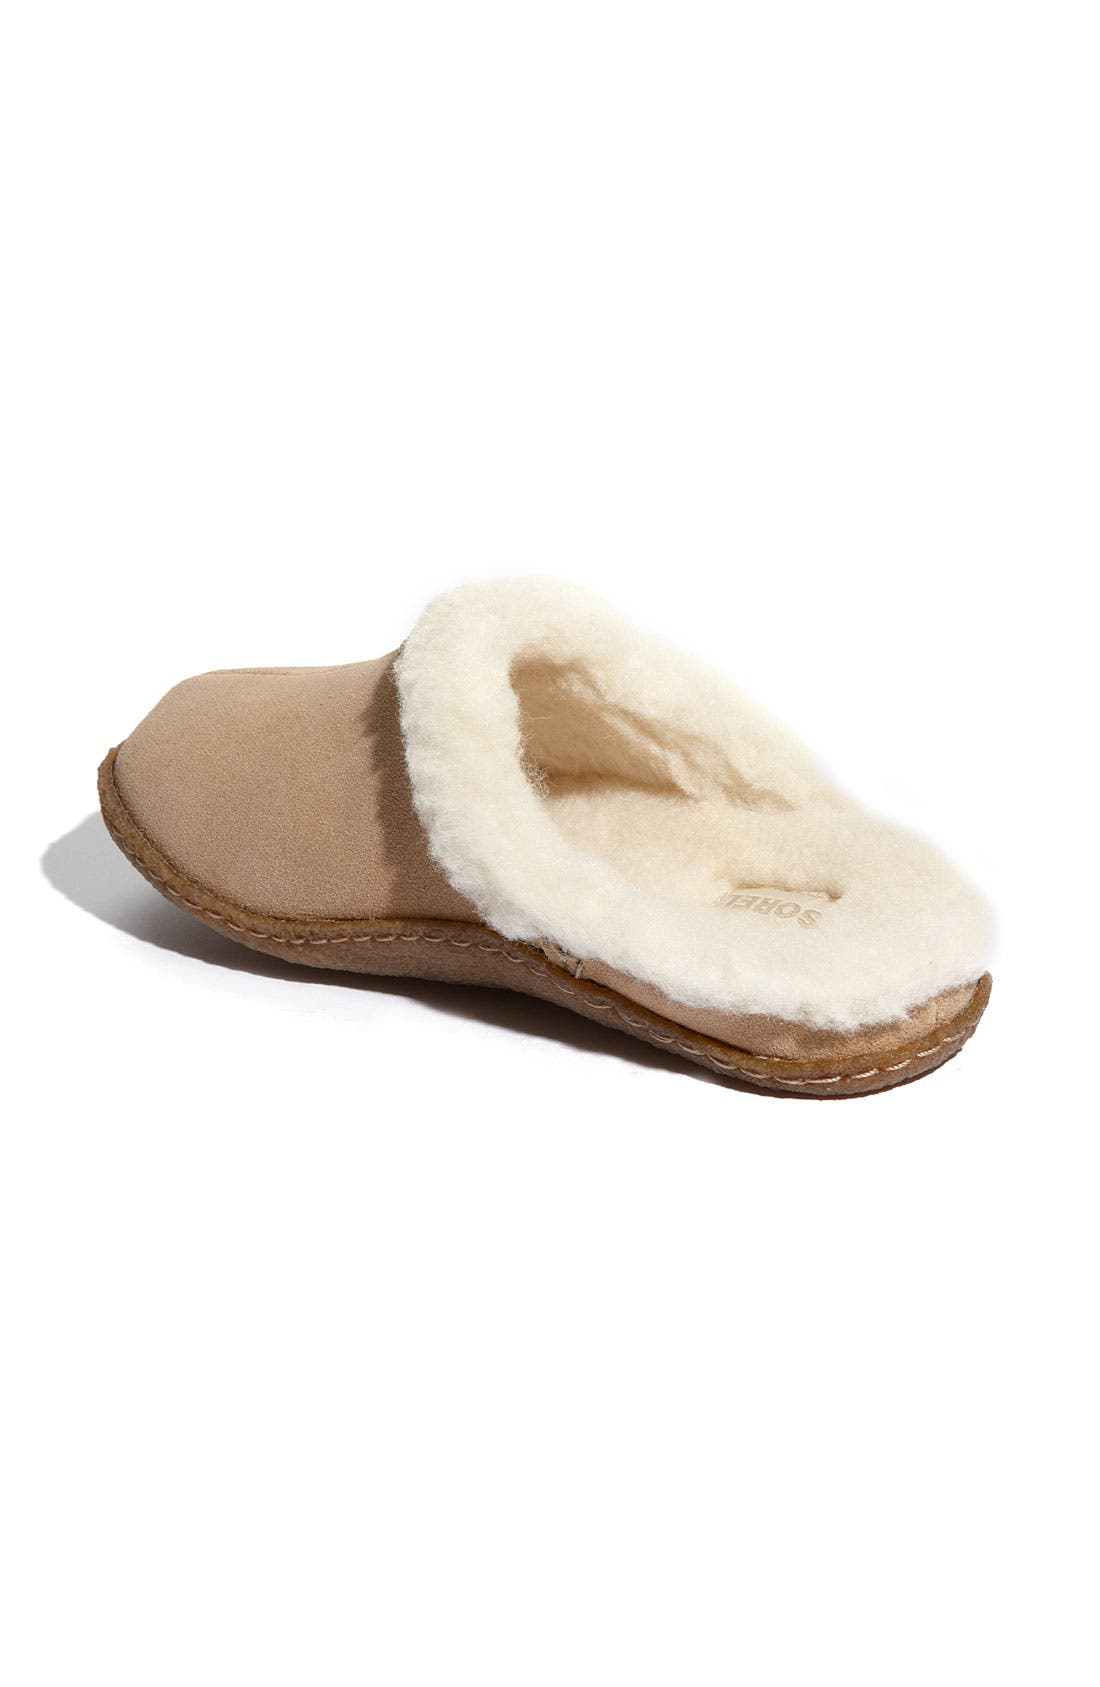 Alternate Image 2  - SOREL 'Nakiska' Slipper